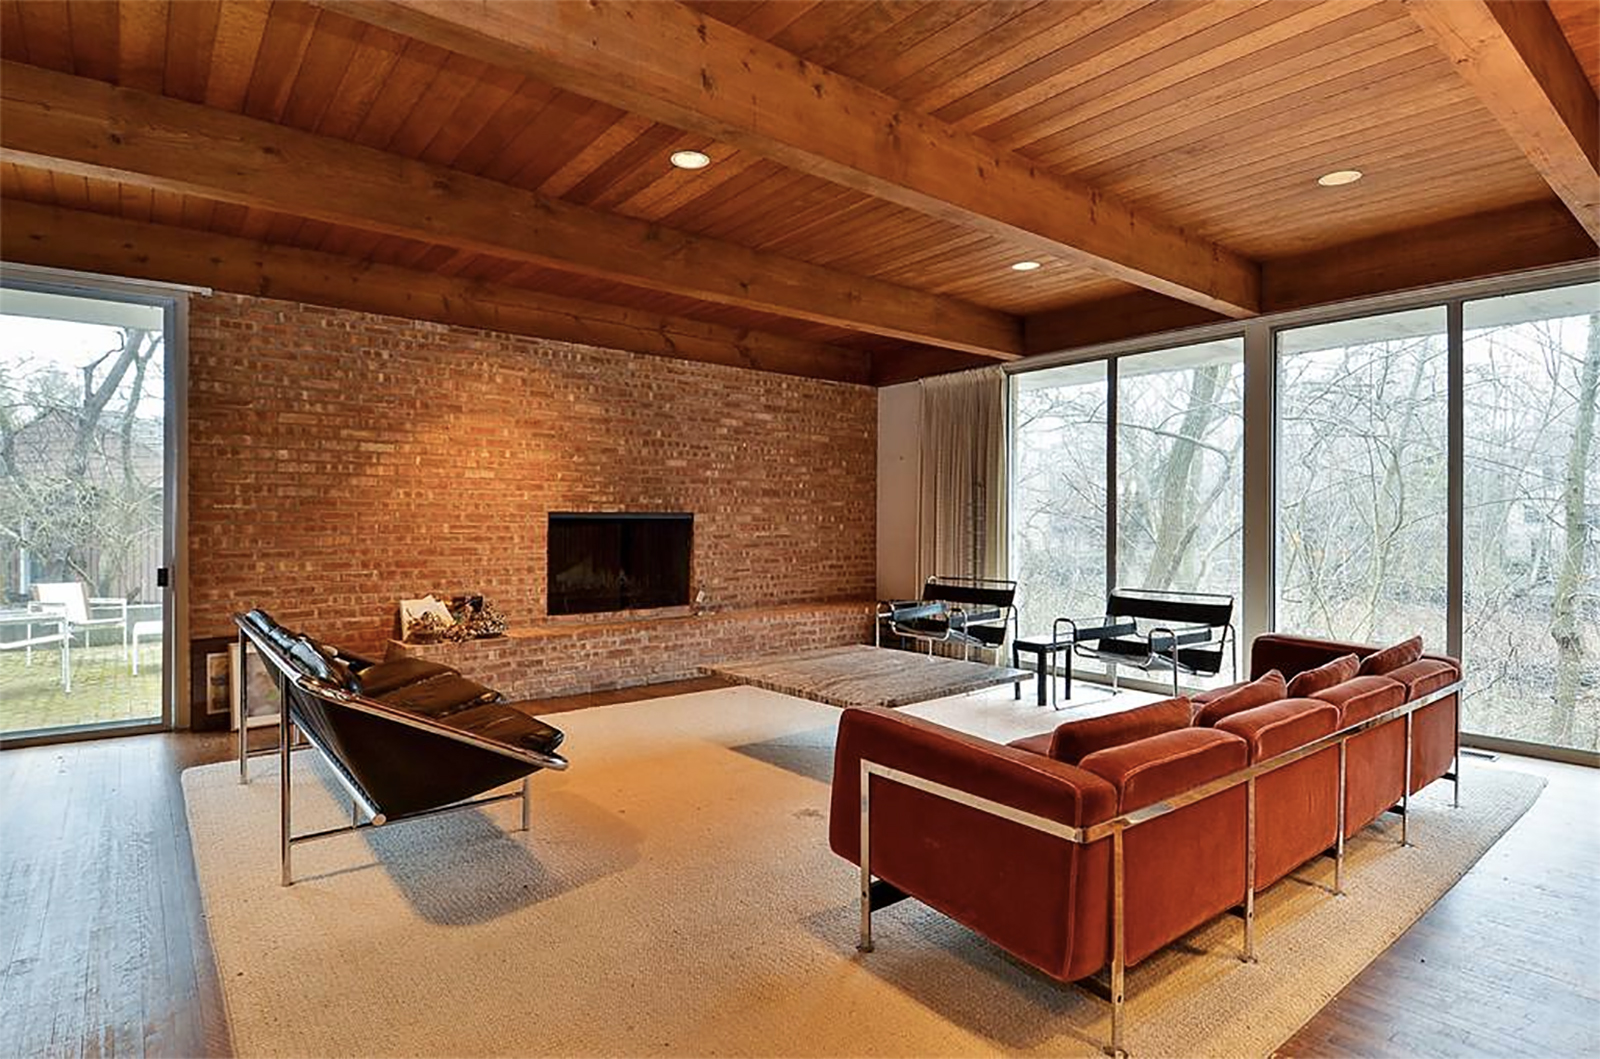 7 of the best midcentury homes for sale in the us Century home builders